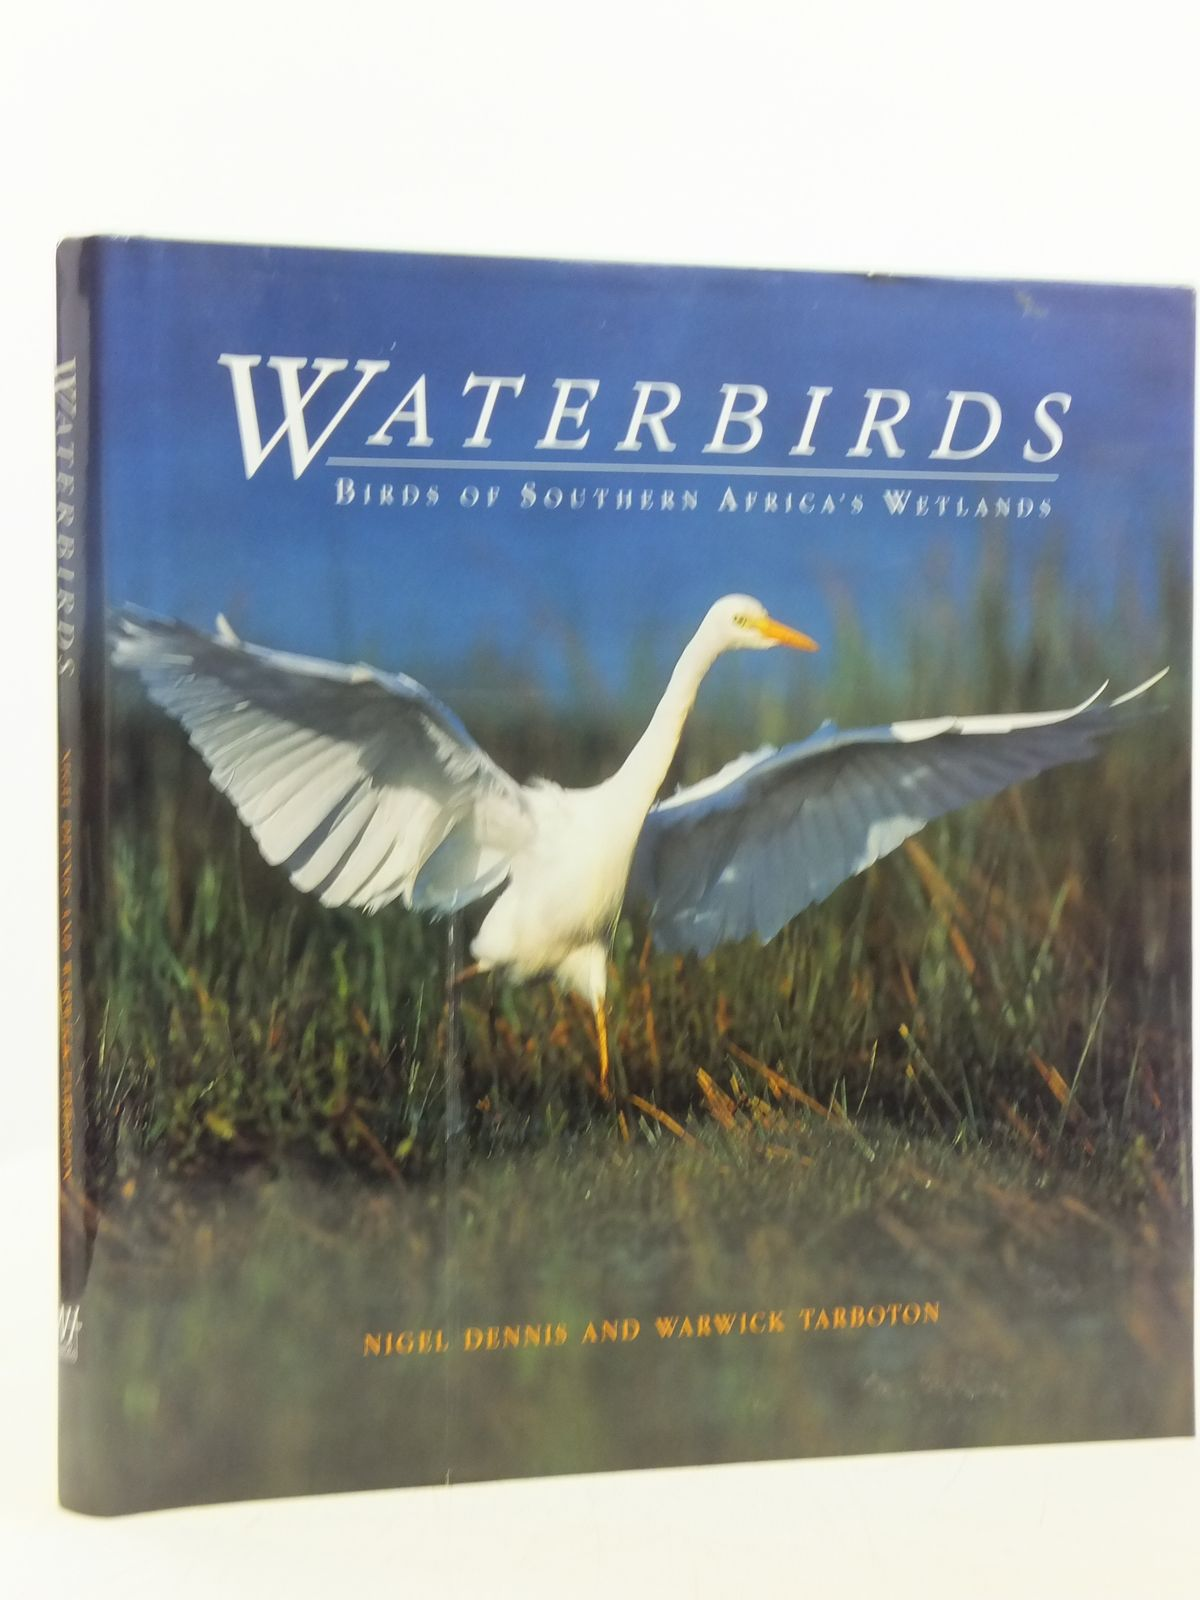 Photo of WATERBIRDS BIRDS OF SOUTHERN AFRICA'S WETLANDS written by Tarboton, Warwick Dennis, Nigel published by New Holland (STOCK CODE: 2119861)  for sale by Stella & Rose's Books